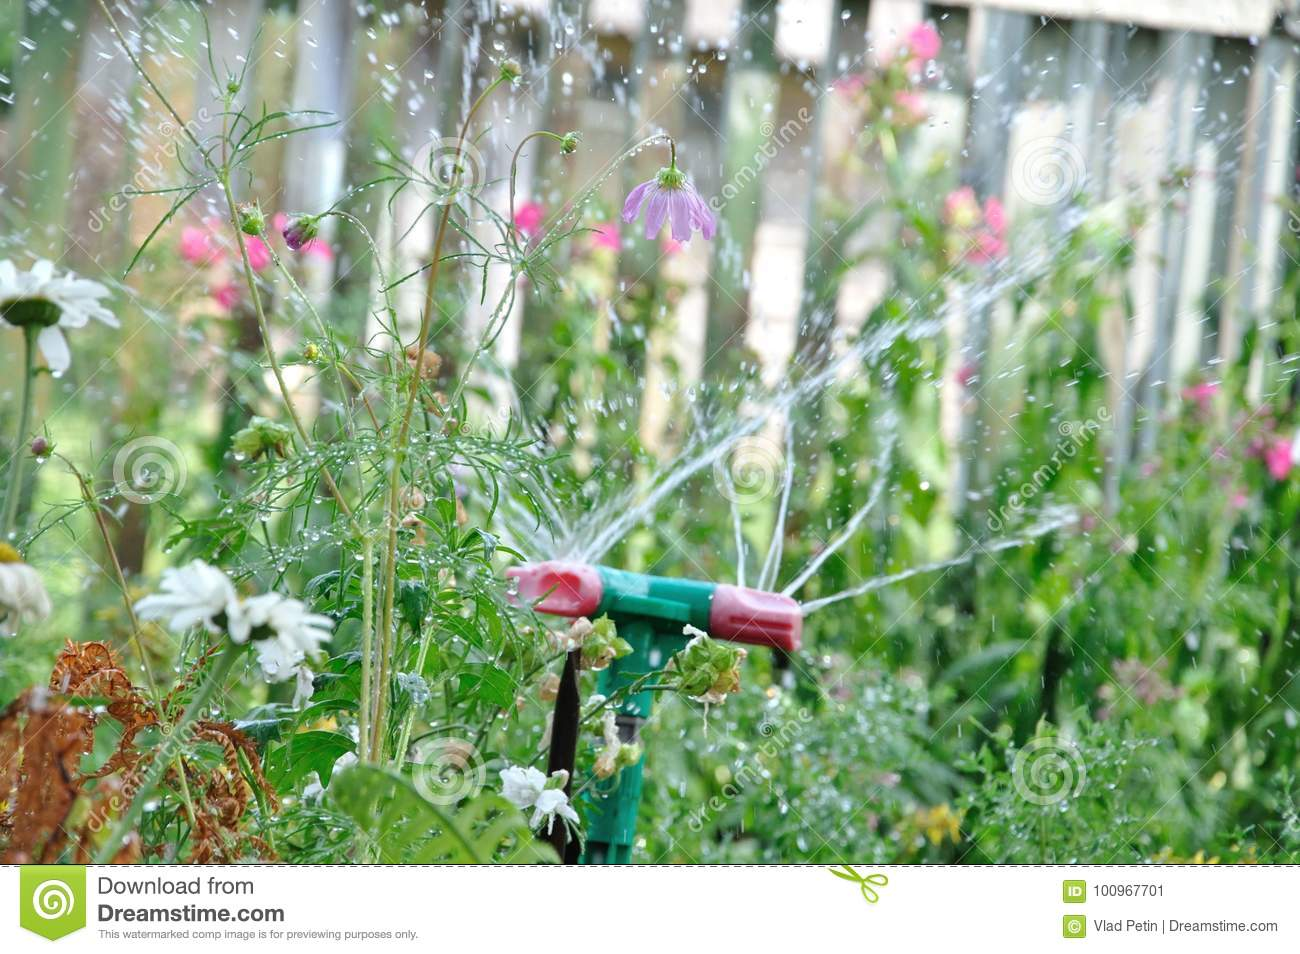 Garden sprinkler watering grass at sunny day and droplets of water